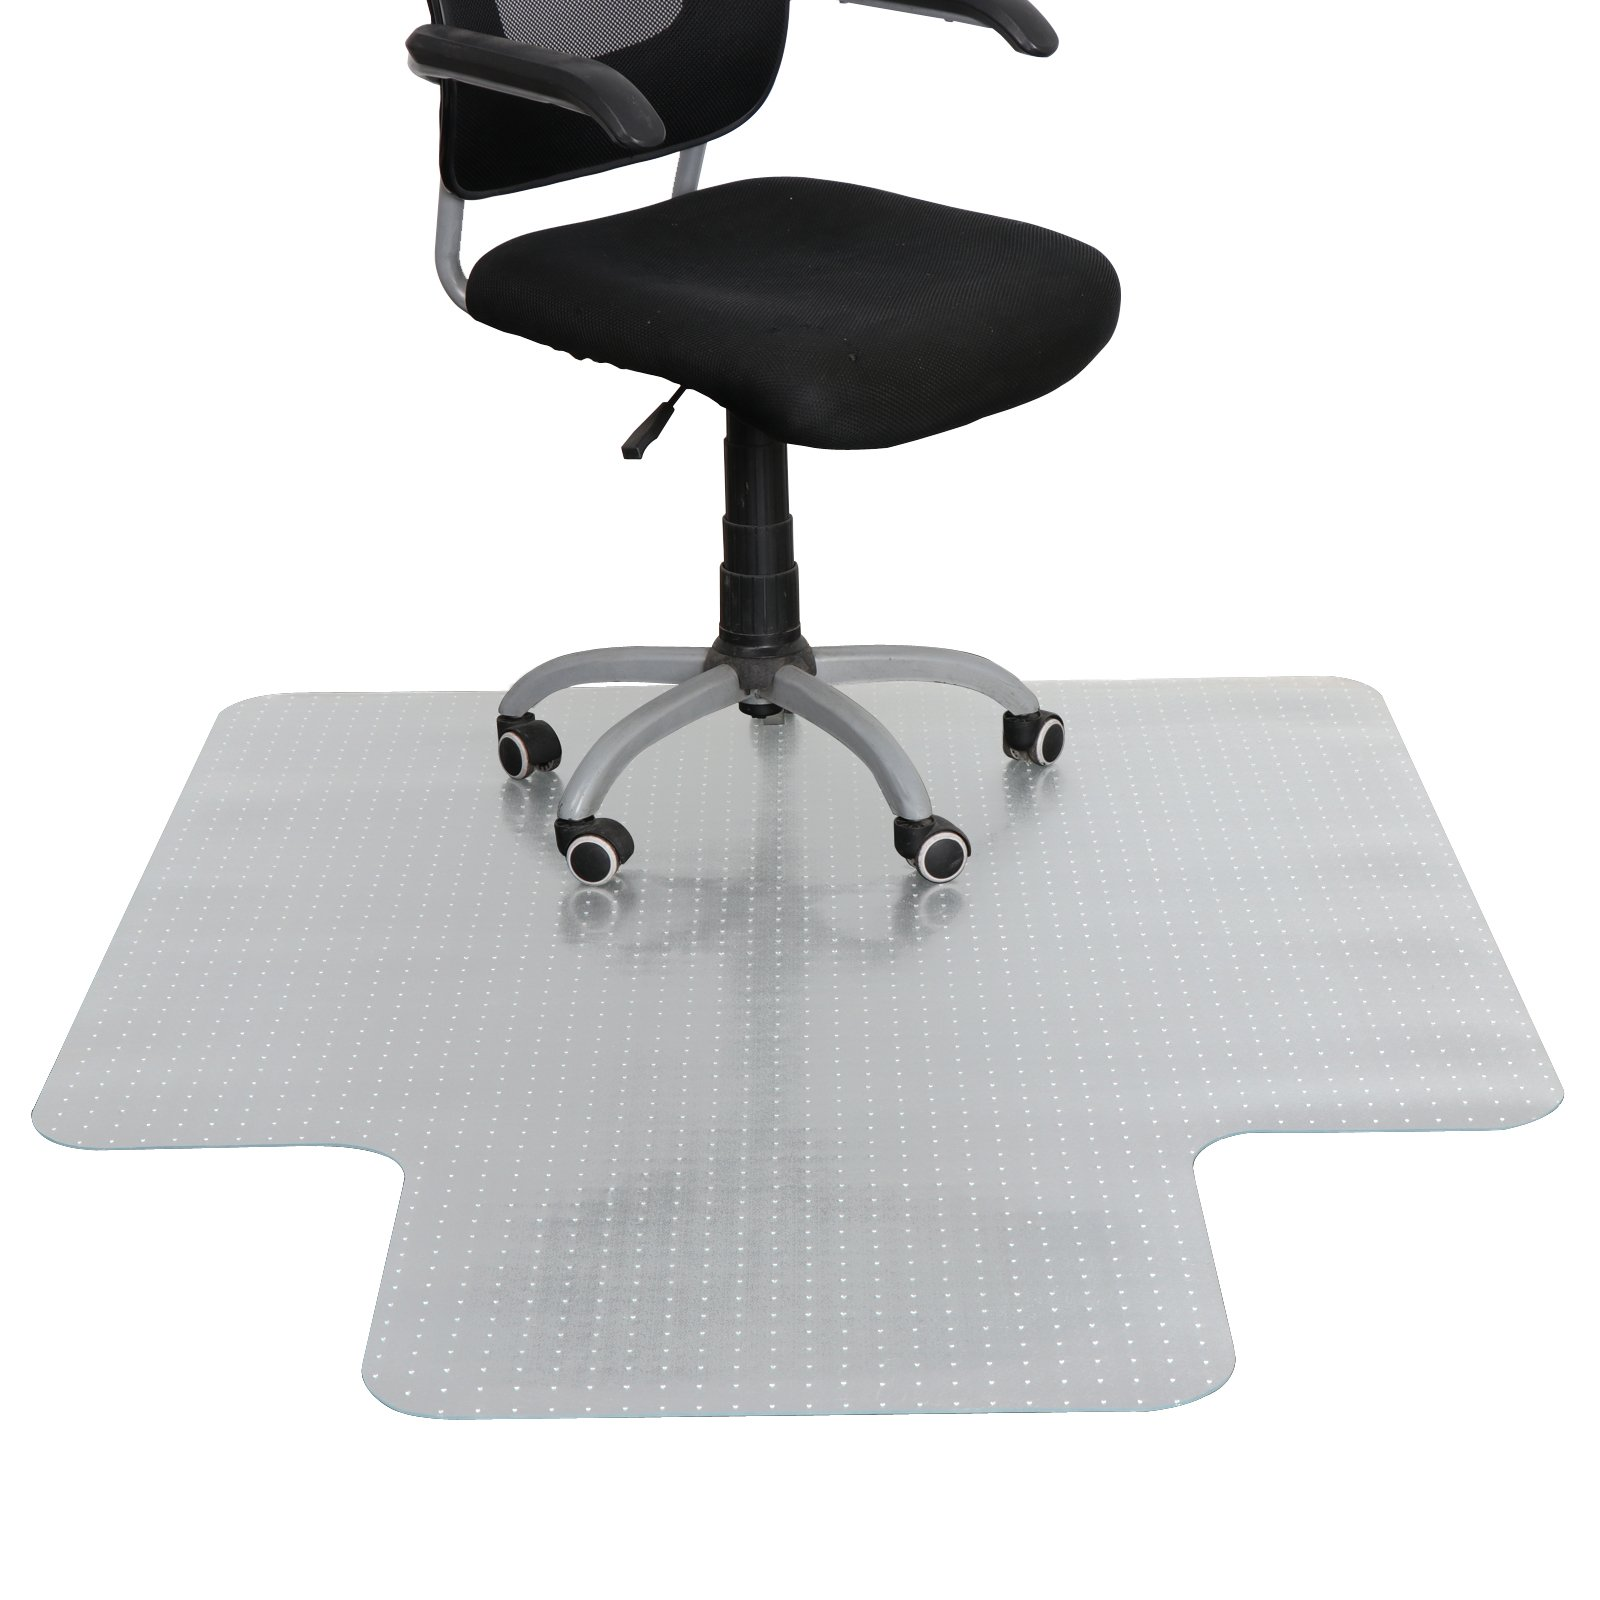 HomGarden 48'' X 60'' 1/8'' with Lip Carpet Chair Mat Transparent for Low and Medium Pile Carpets Desk Chair Mat, Home Office Floor Protector by HomGarden